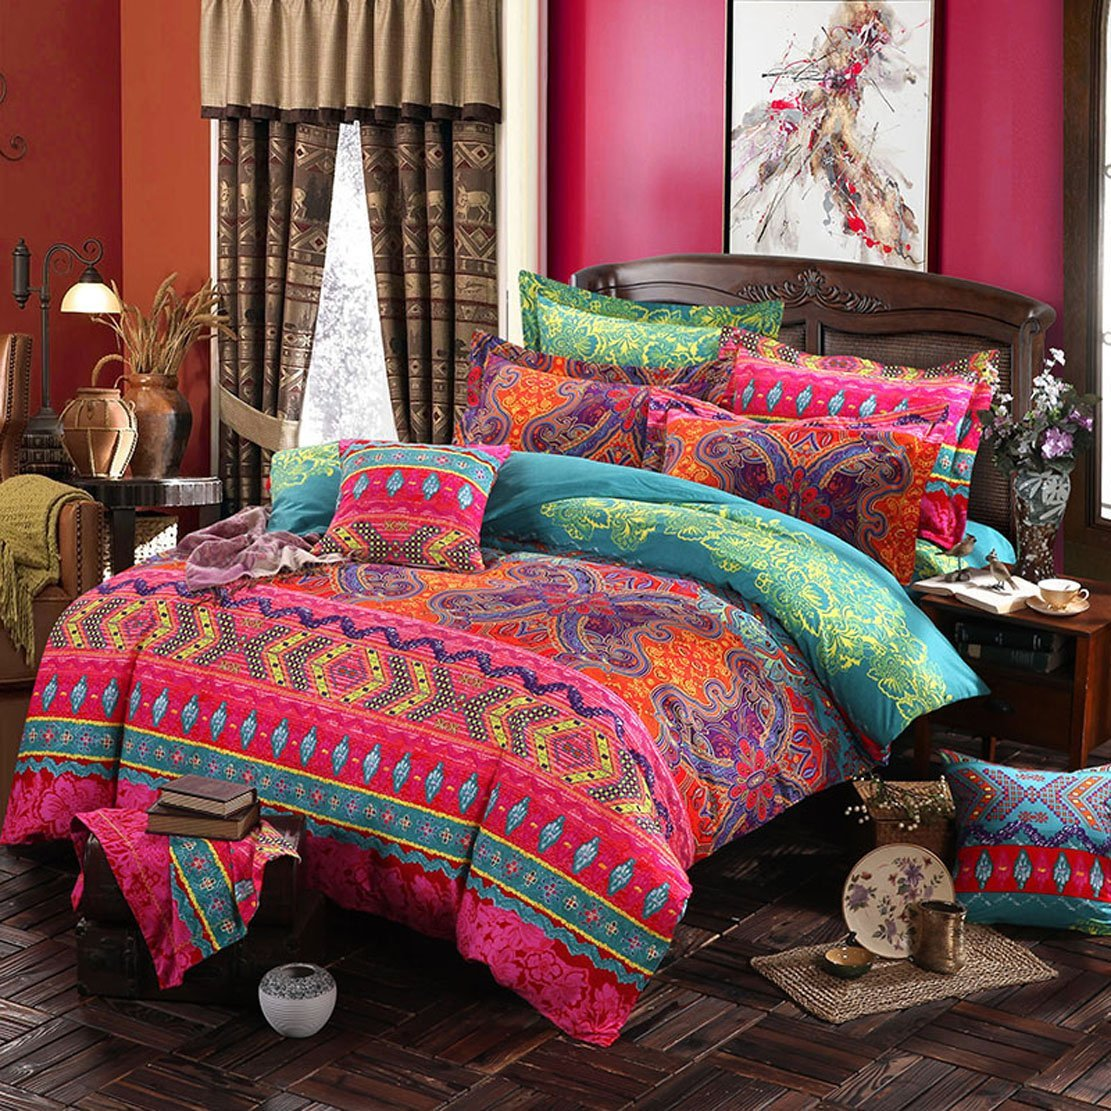 Duvet-Cover-Sets Bohemian-Style 1/2-Pillowcases Fashion 100%Polyester Us/eu/au-size title=